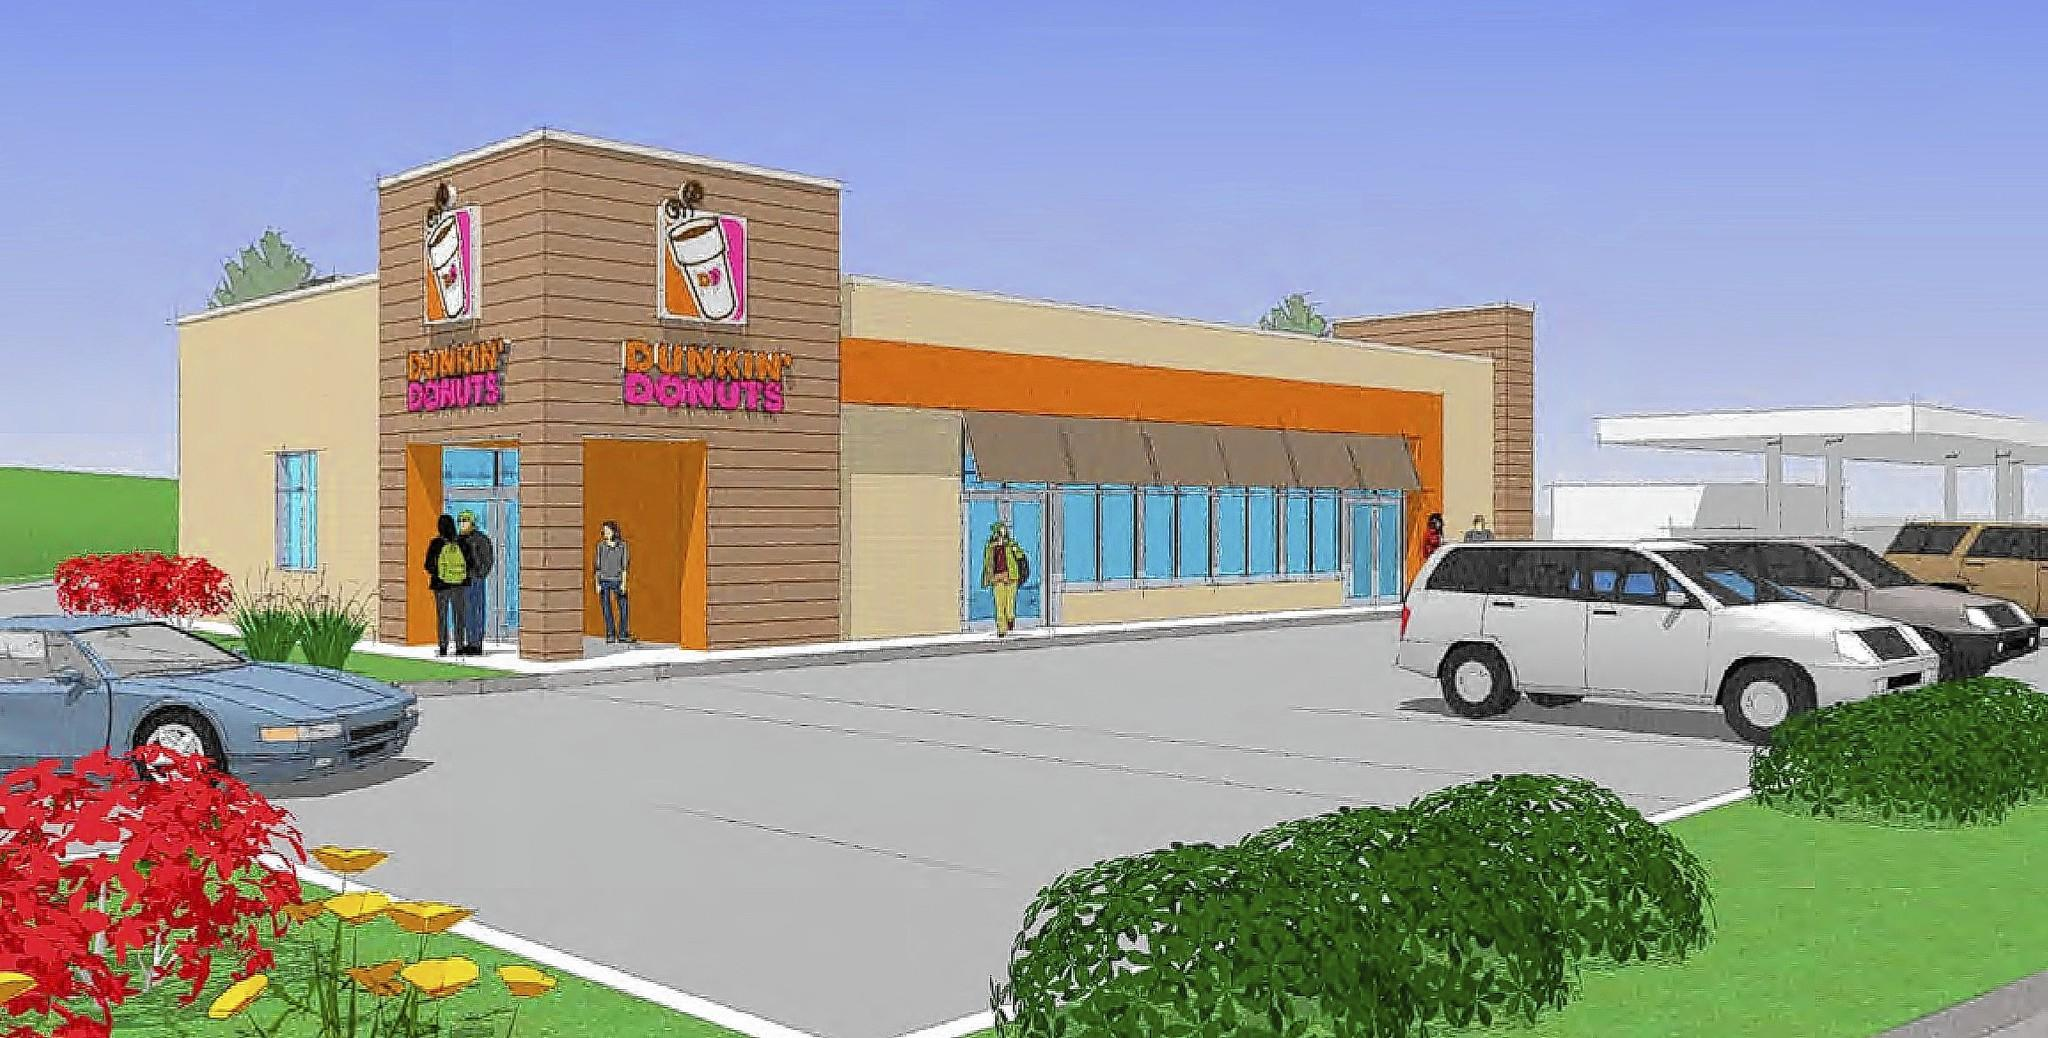 A rendering shows a new Dunkin' Donuts location near the intersection of Willow and Shermer roads in Glenview.